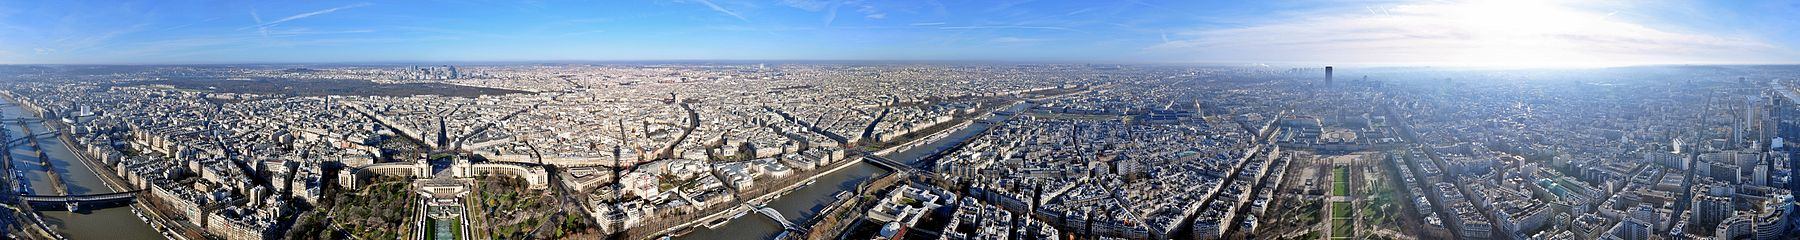 Panorama of Paris as seen from the Eiffel Tower as full 360-degree view.